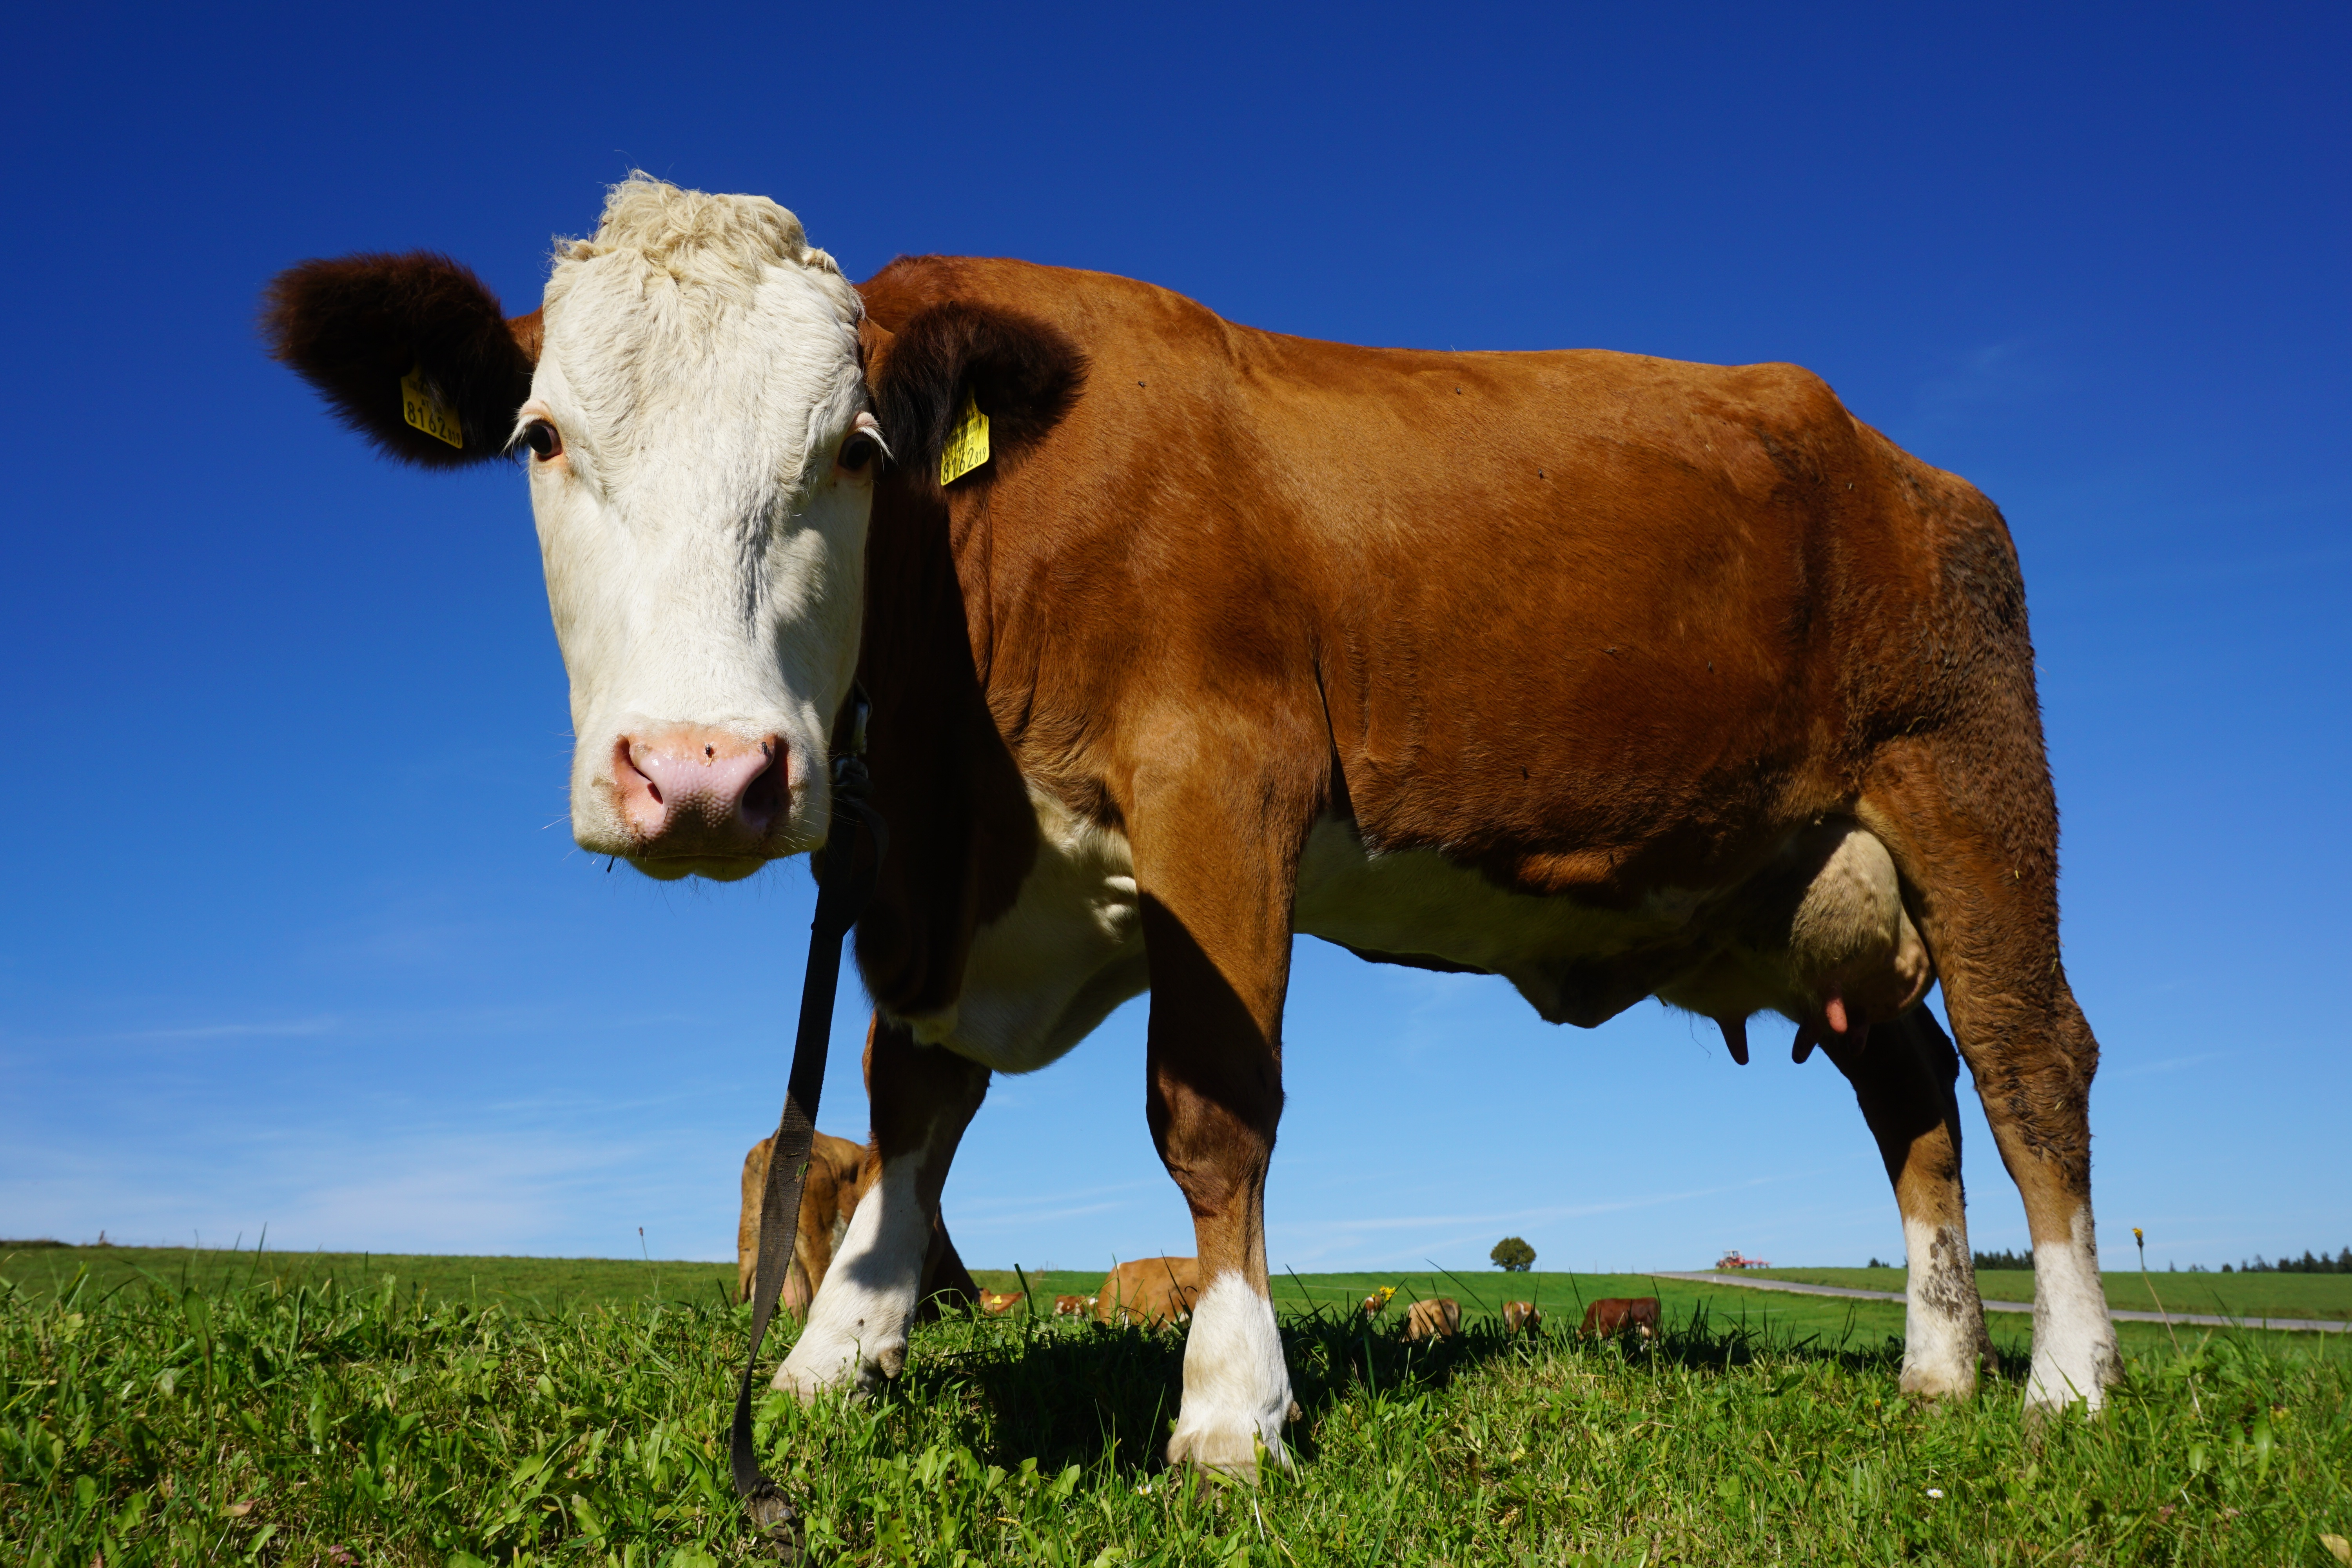 Crazy for Cows - Celebrate bovines! Guest Cows and the Free photos of cows